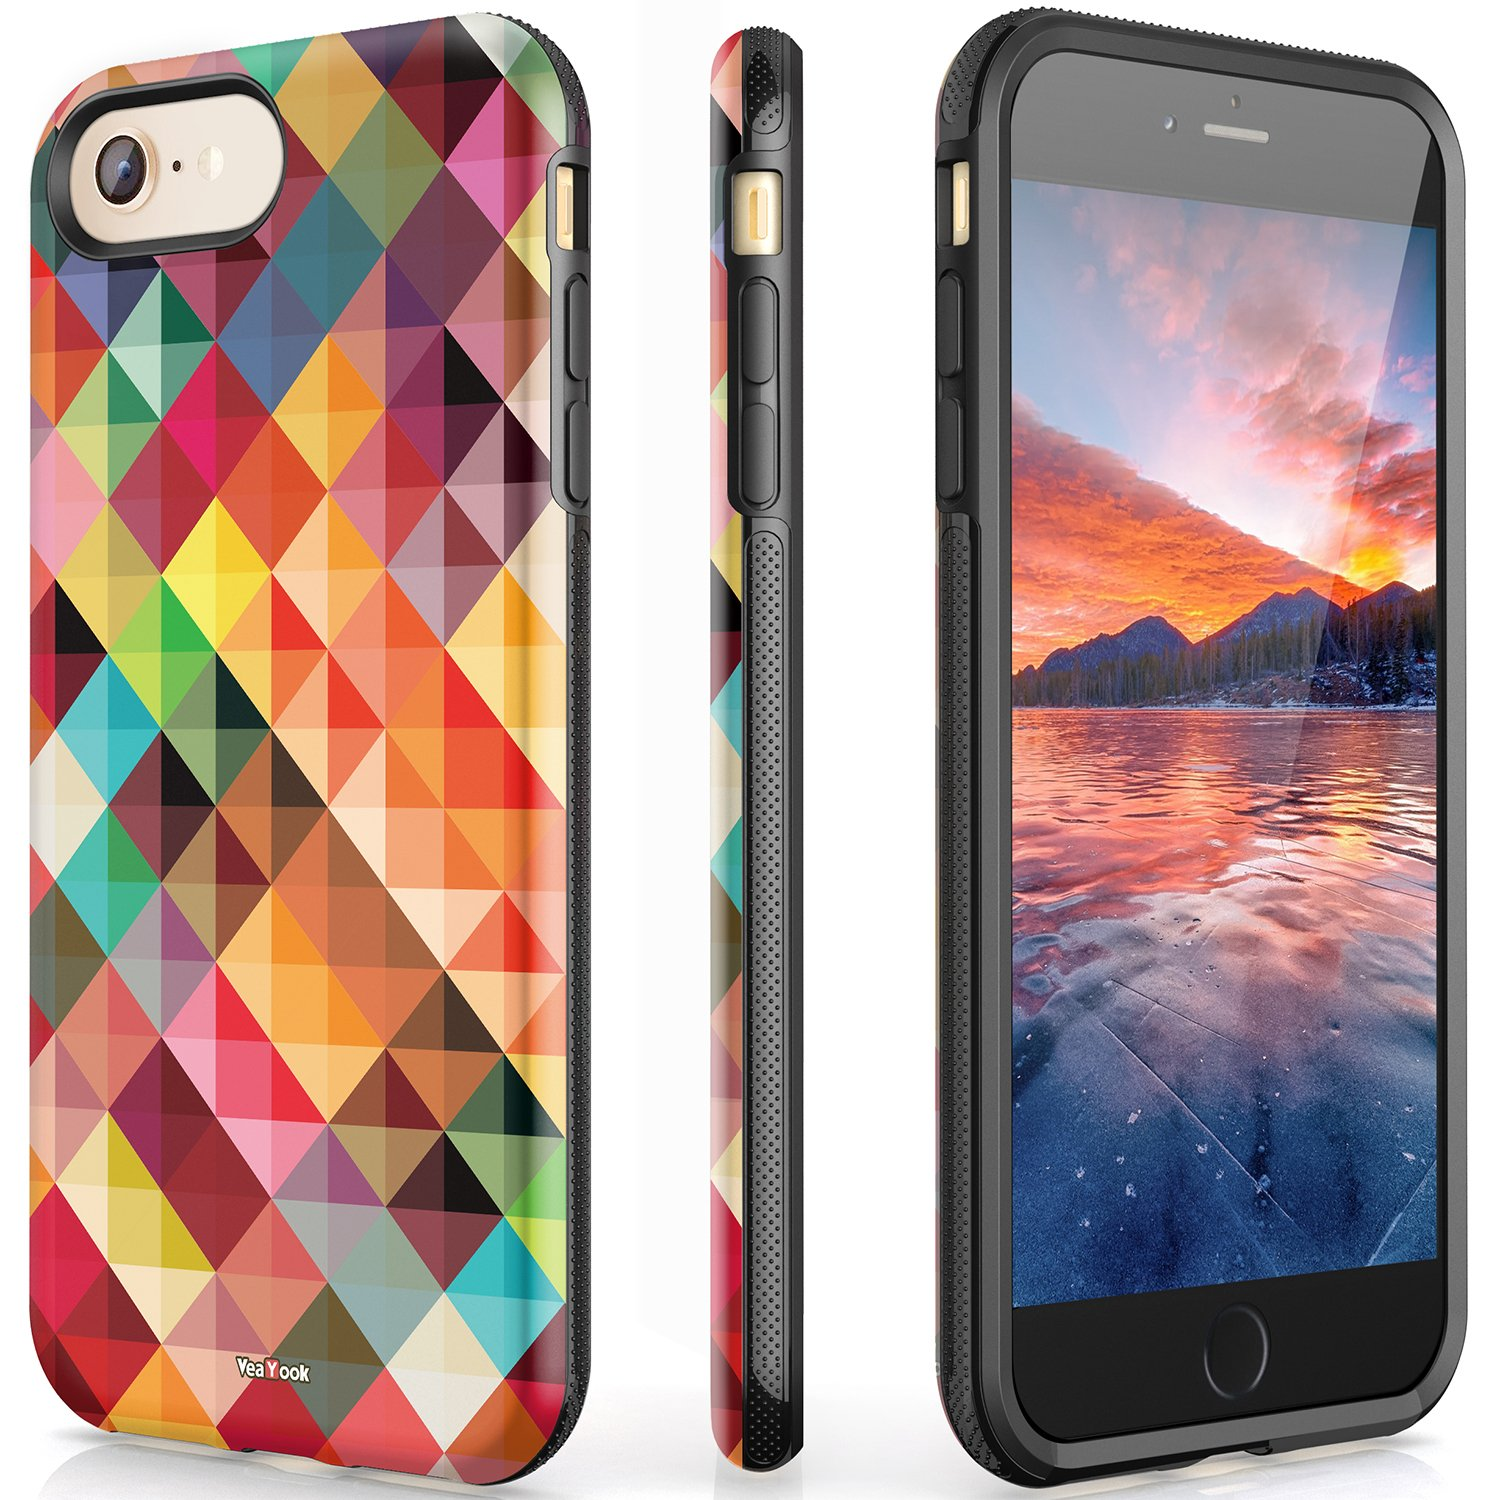 VeaYook for iPhone 6 iPhone 6s Womens Case with Ring Holder Kickstand Shockproof Full Protection Anti-Scratch Impact Resistant Protective Durable Slim Dual Layer (Glittery Geometric)